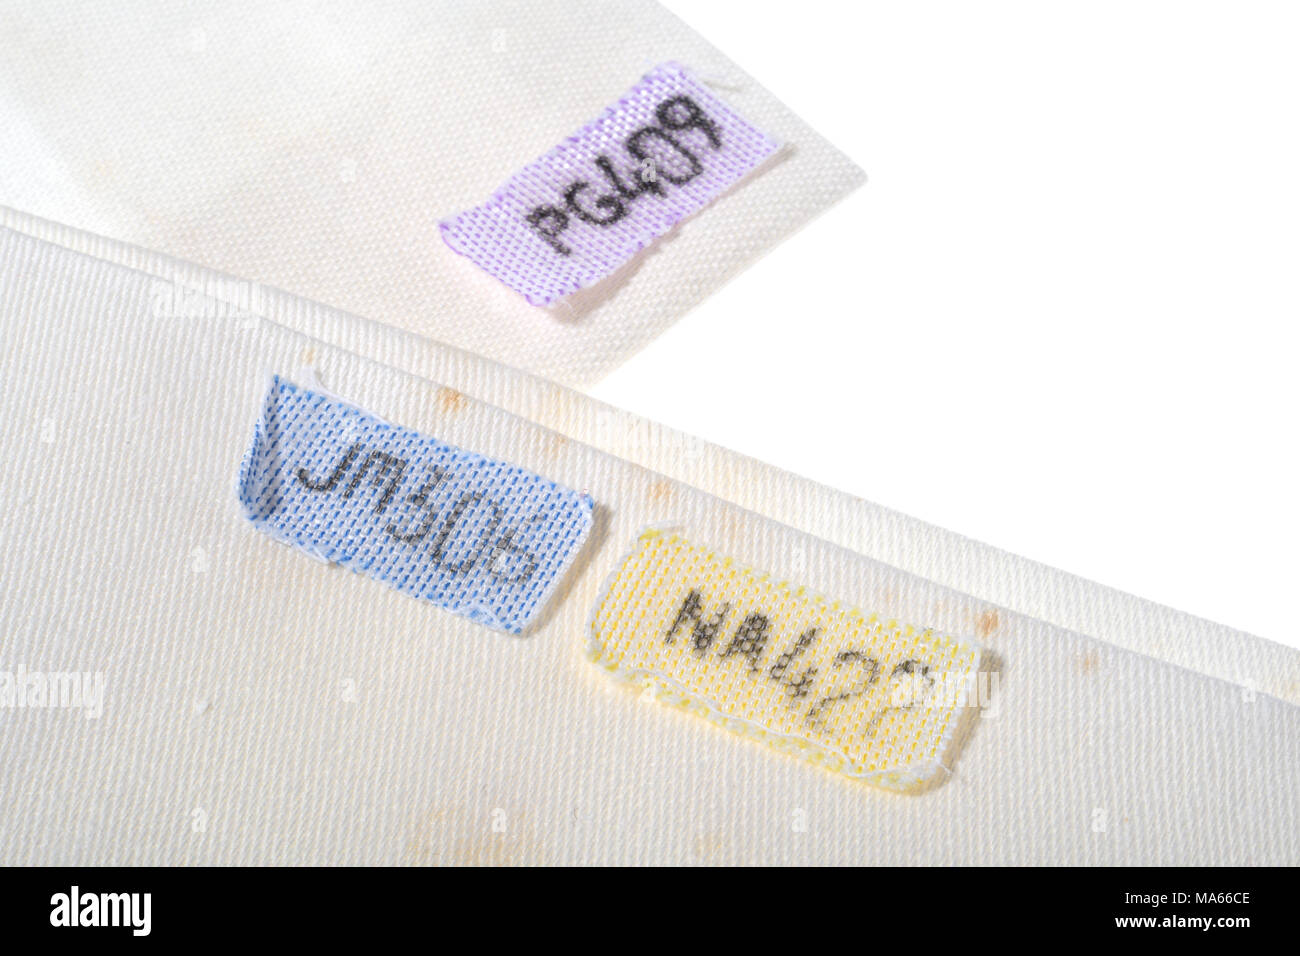 Old fashioned laundry tags to denote where items of laundry should be returned to. - Stock Image